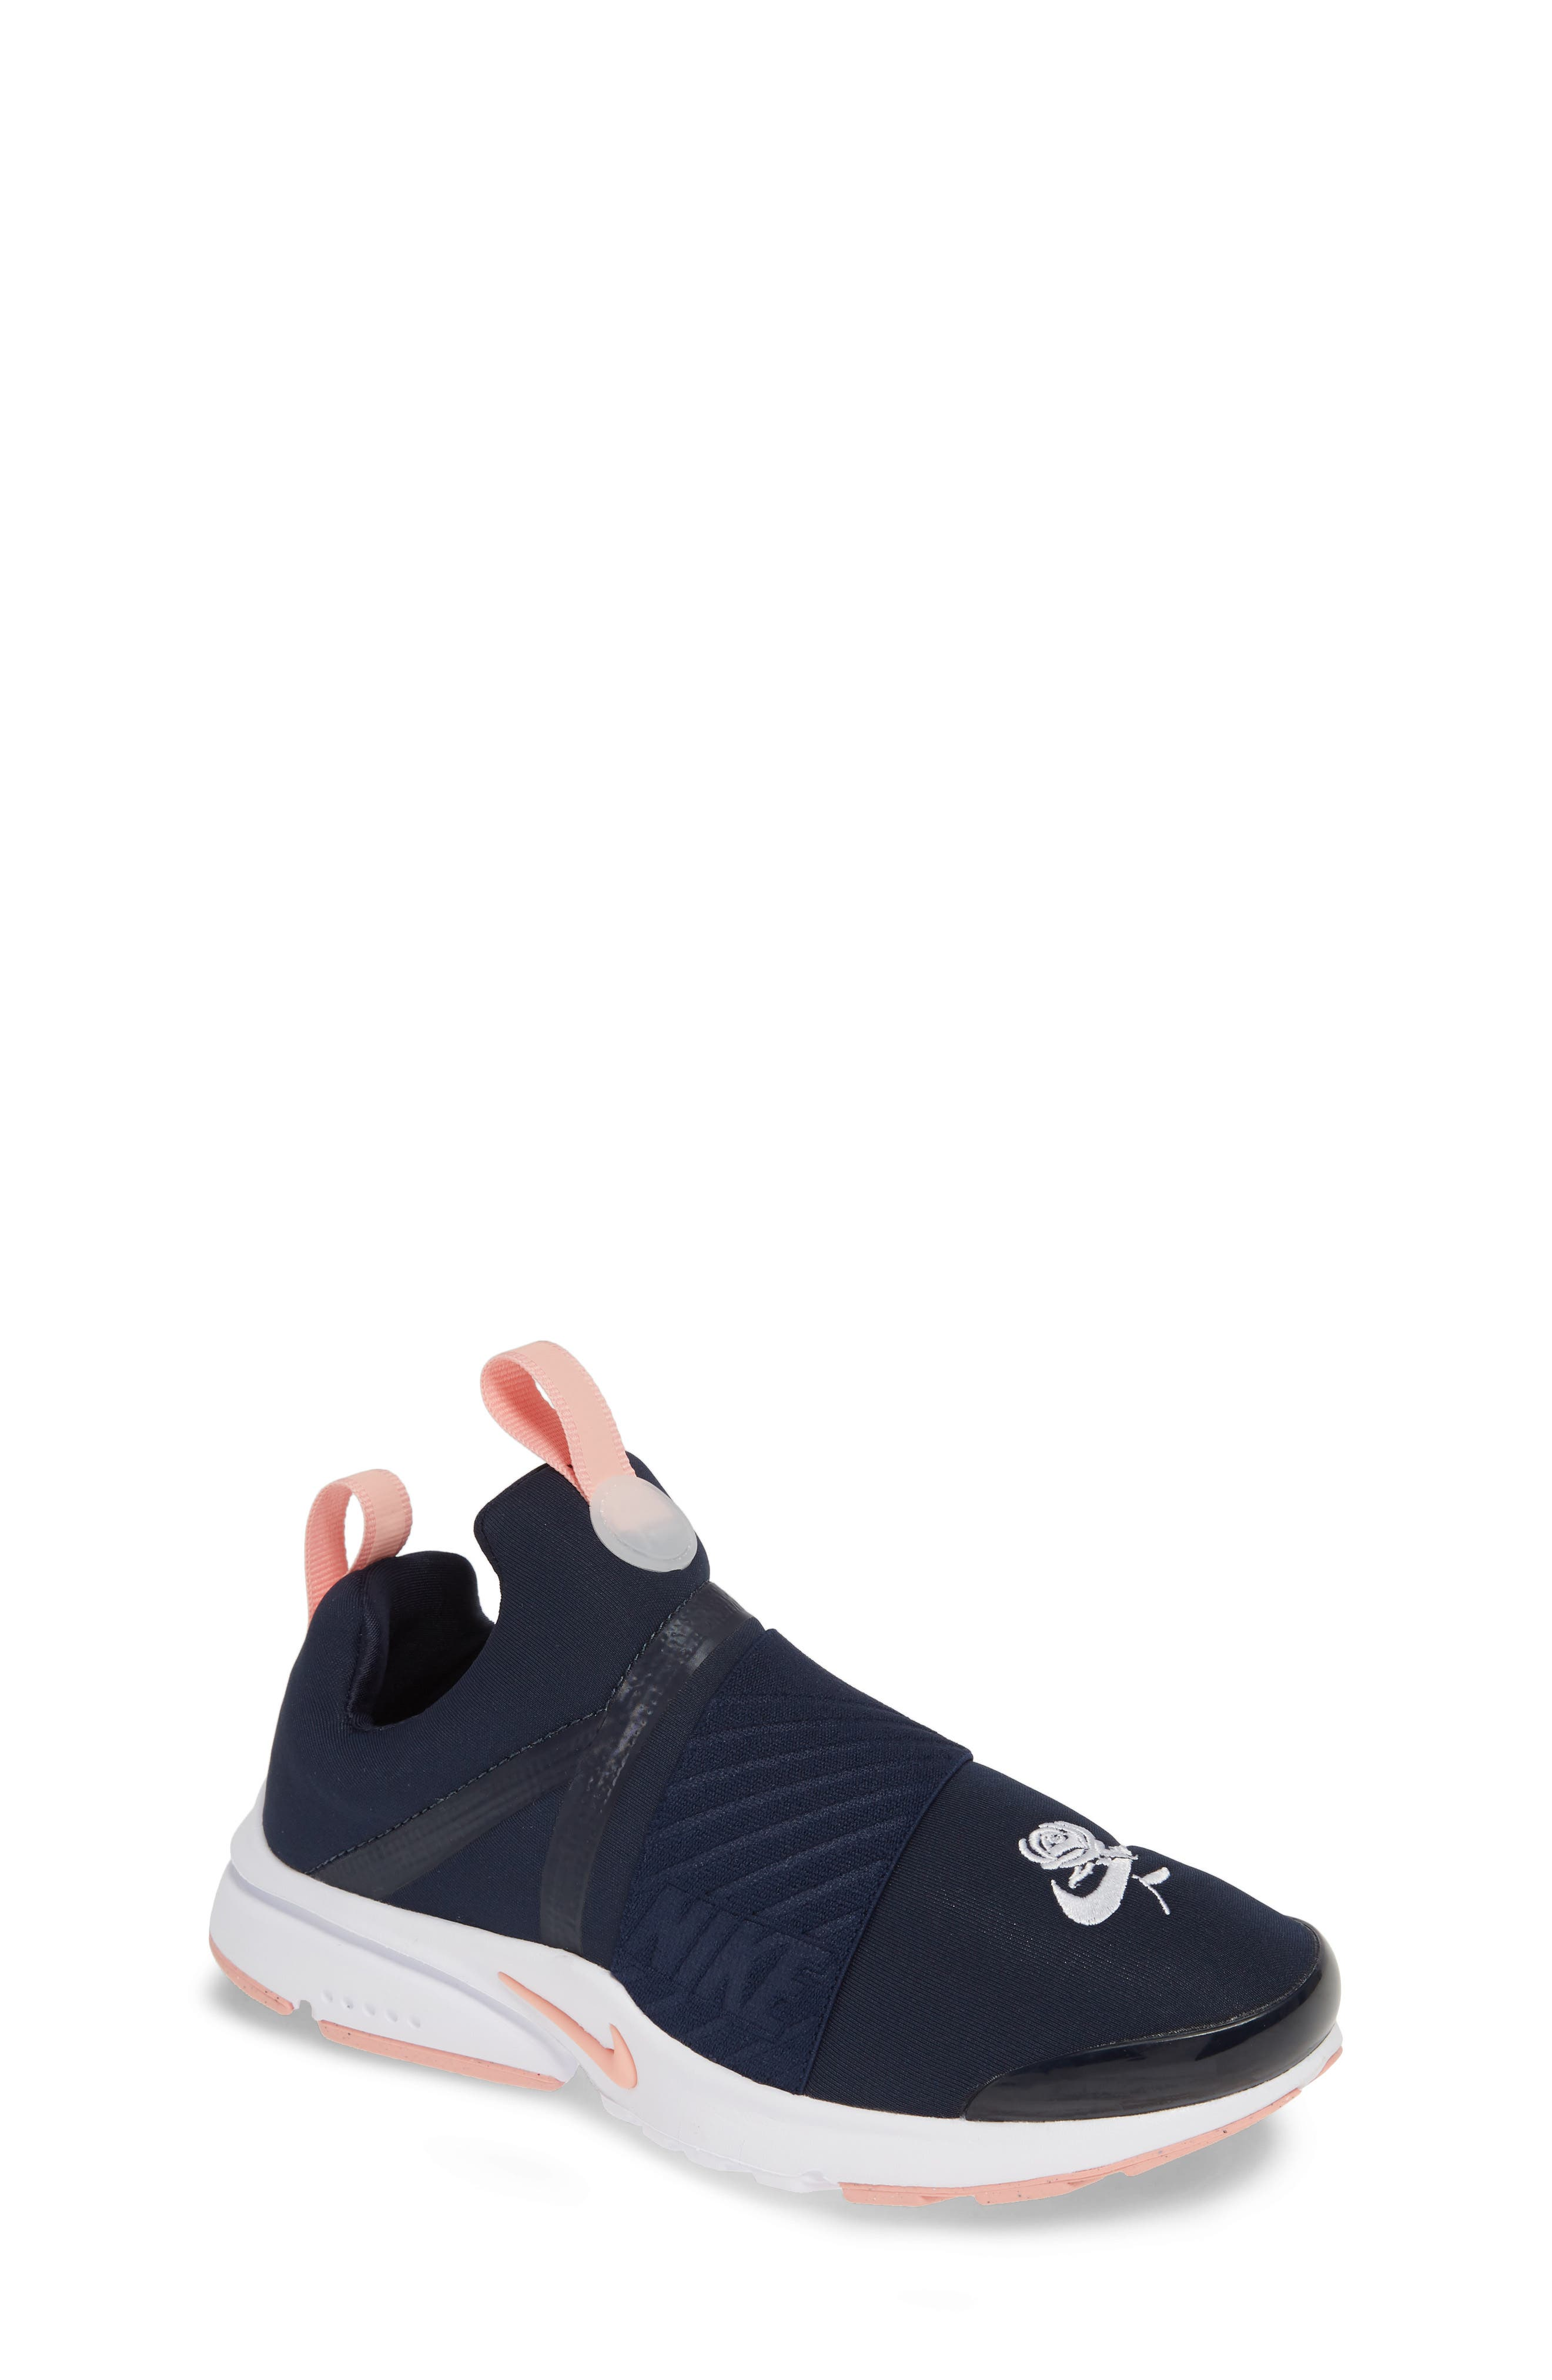 NIKE Presto Extreme VDAY Sneaker, Main, color, OBSIDIAN/ BLEACHED CORAL-WHITE